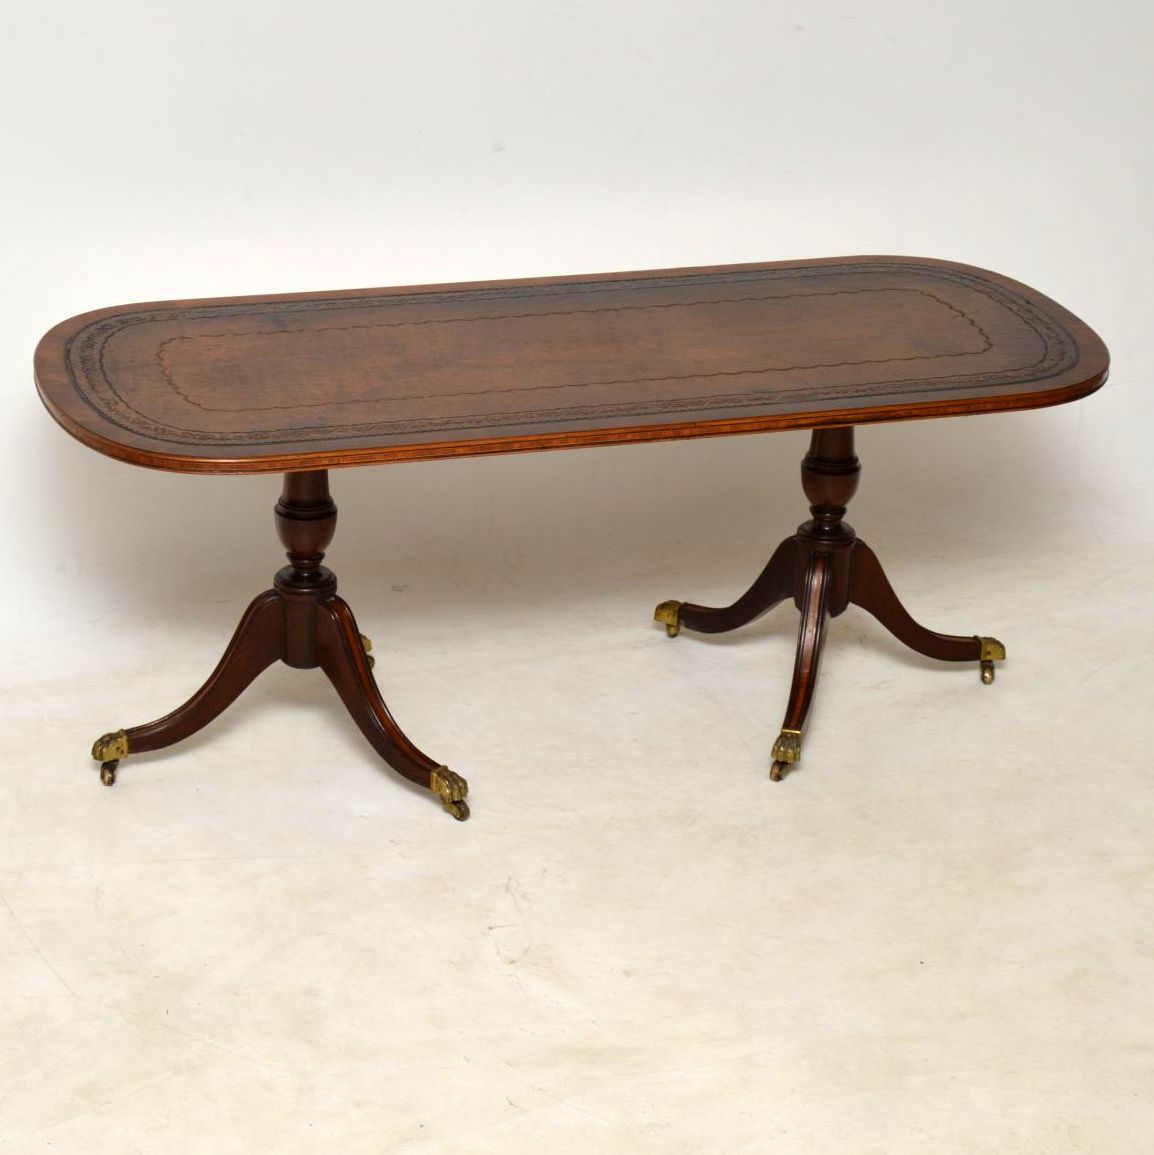 Antique Regency Style Leather Top Mahogany Coffee Table